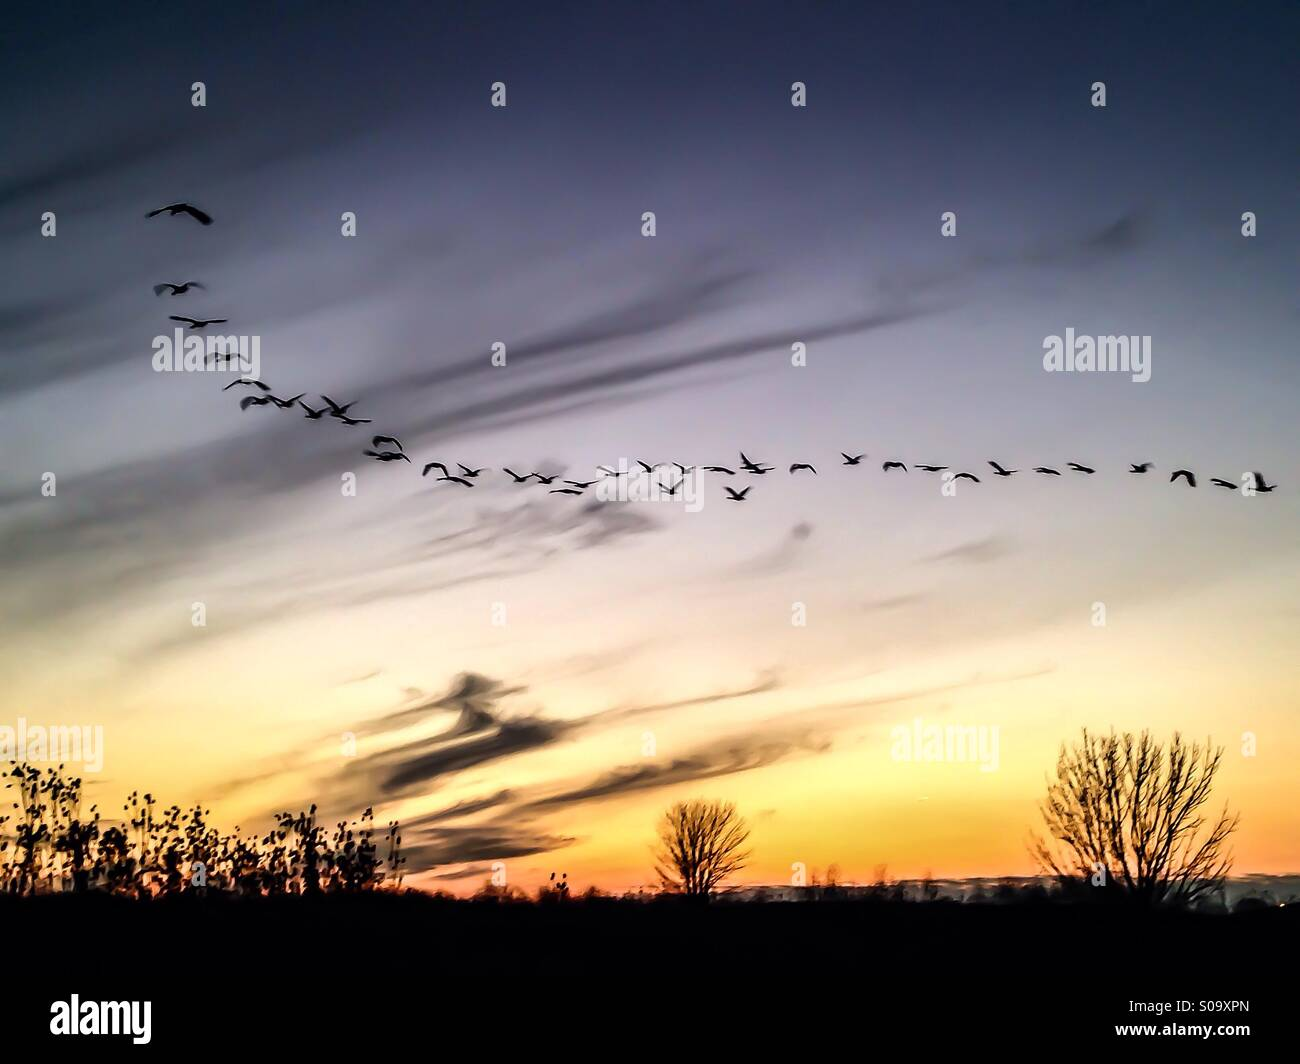 Birds flying into the sunset. - Stock Image